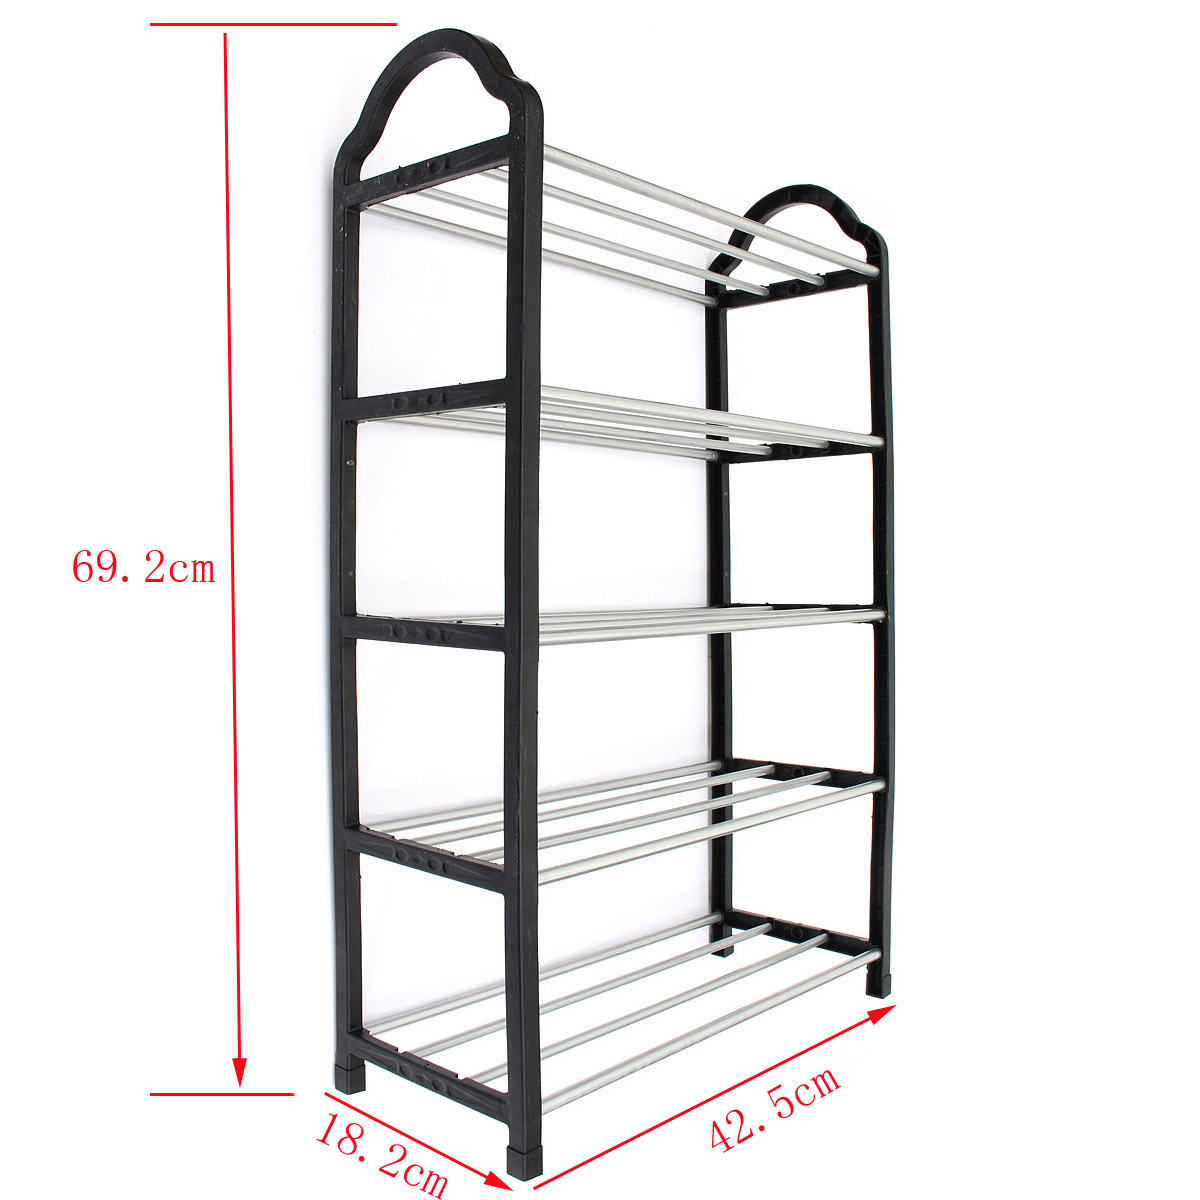 5 Tier Shoe Tower Rack Portable Excellent Quality Luxury Aluminum Stand  Space Saving Organiser Storage Unit Shelves Black In Storage Holders U0026  Racks From ...